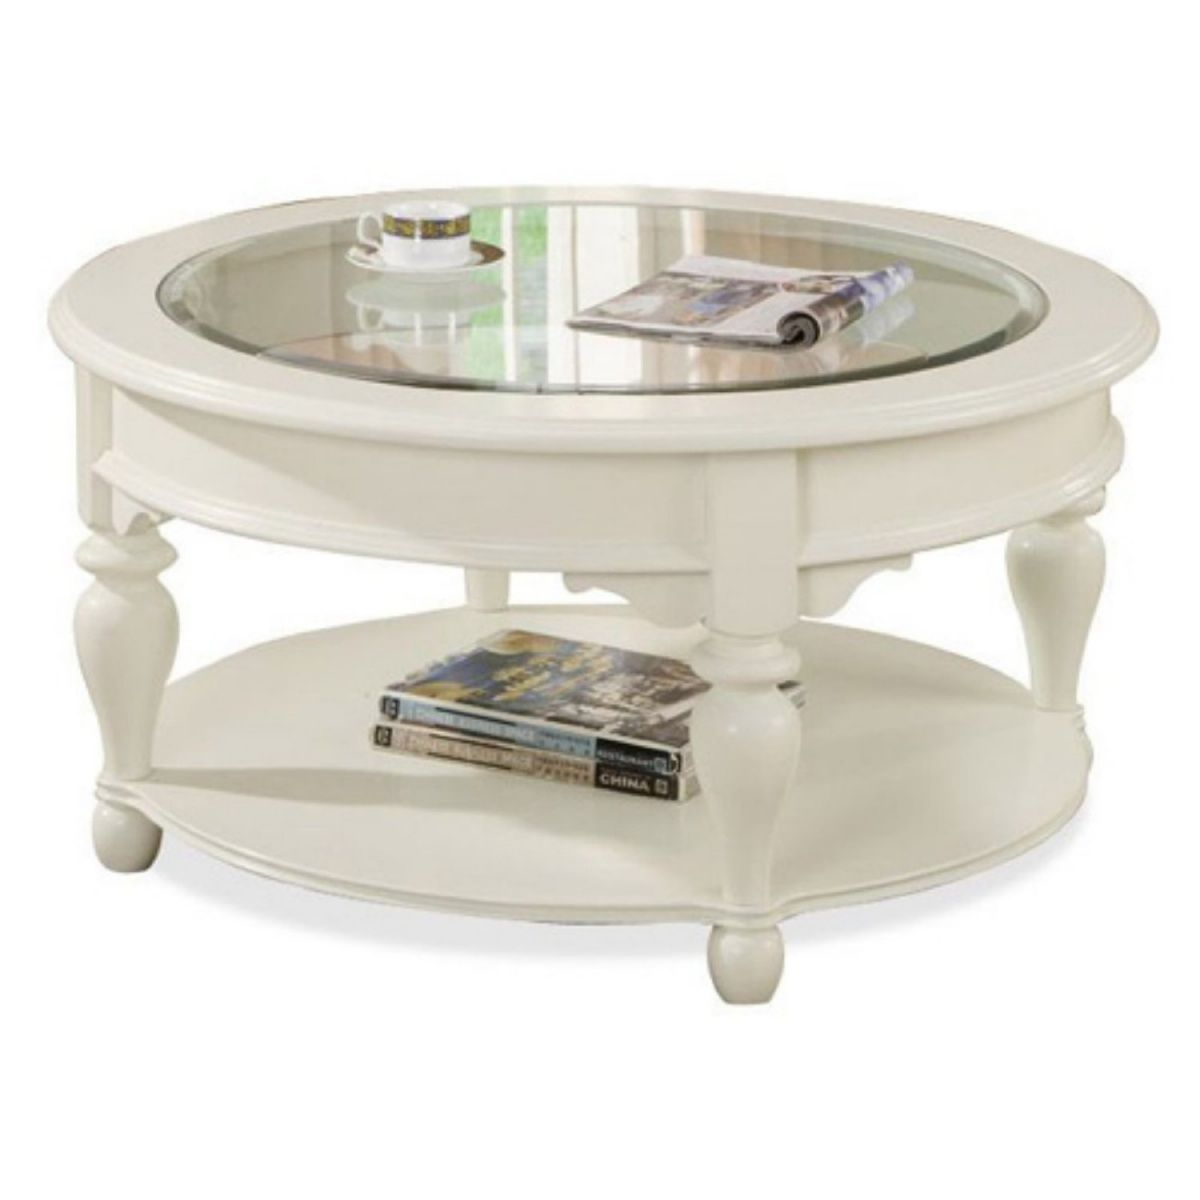 Shabby Chic Round White Coffee Table Idea With Glass Combined Wood